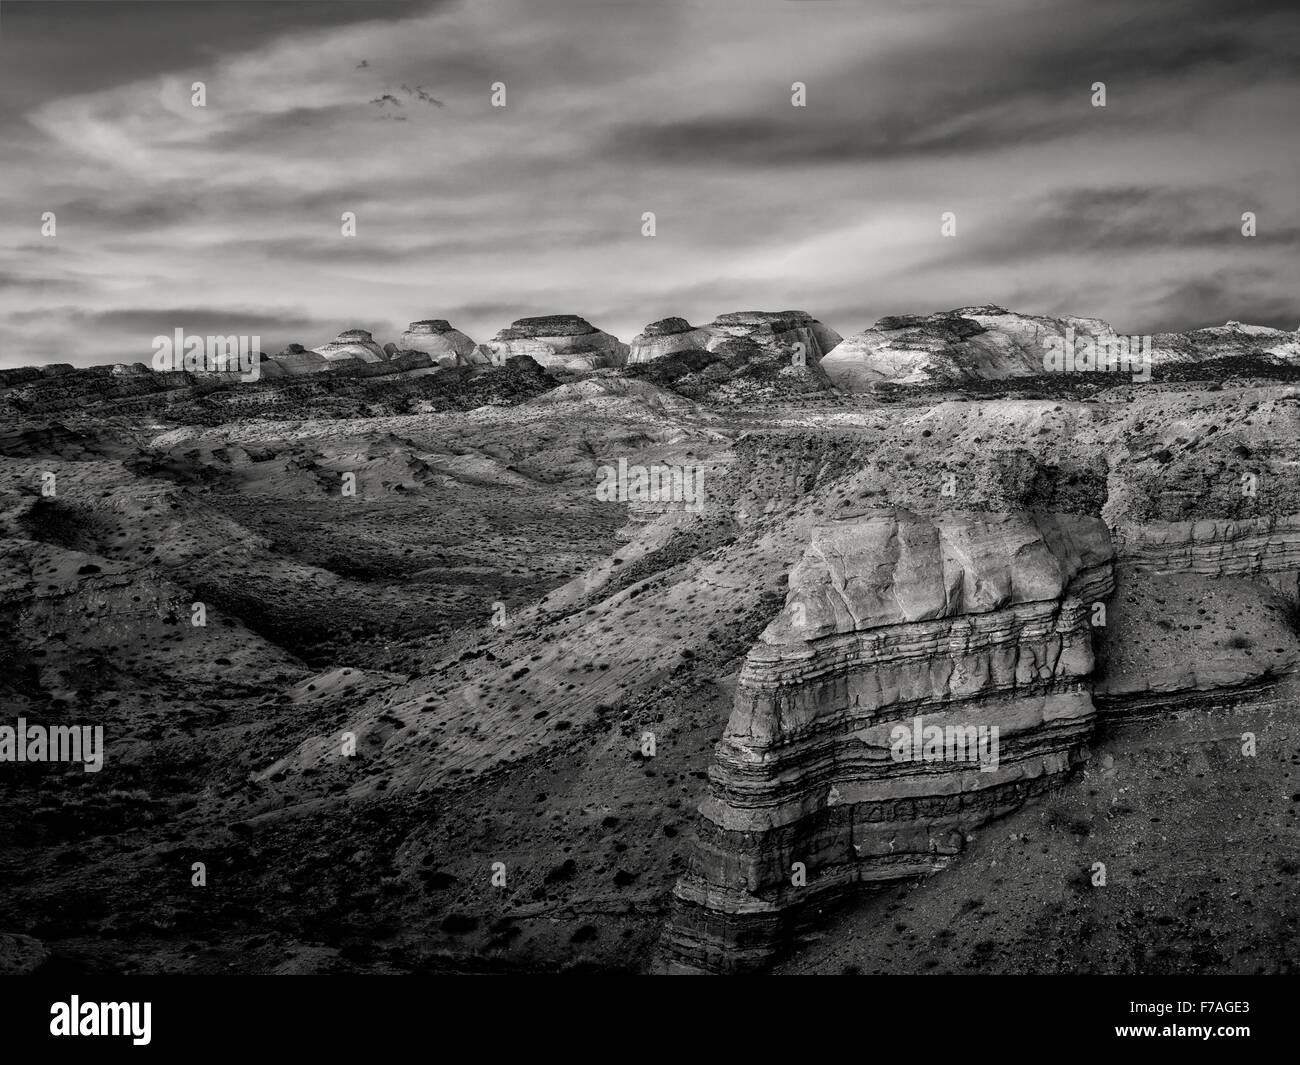 Sunrise at The Hartnet South Desert Waterpocket Fold. Capitol Reef National Park, Utah - Stock Image